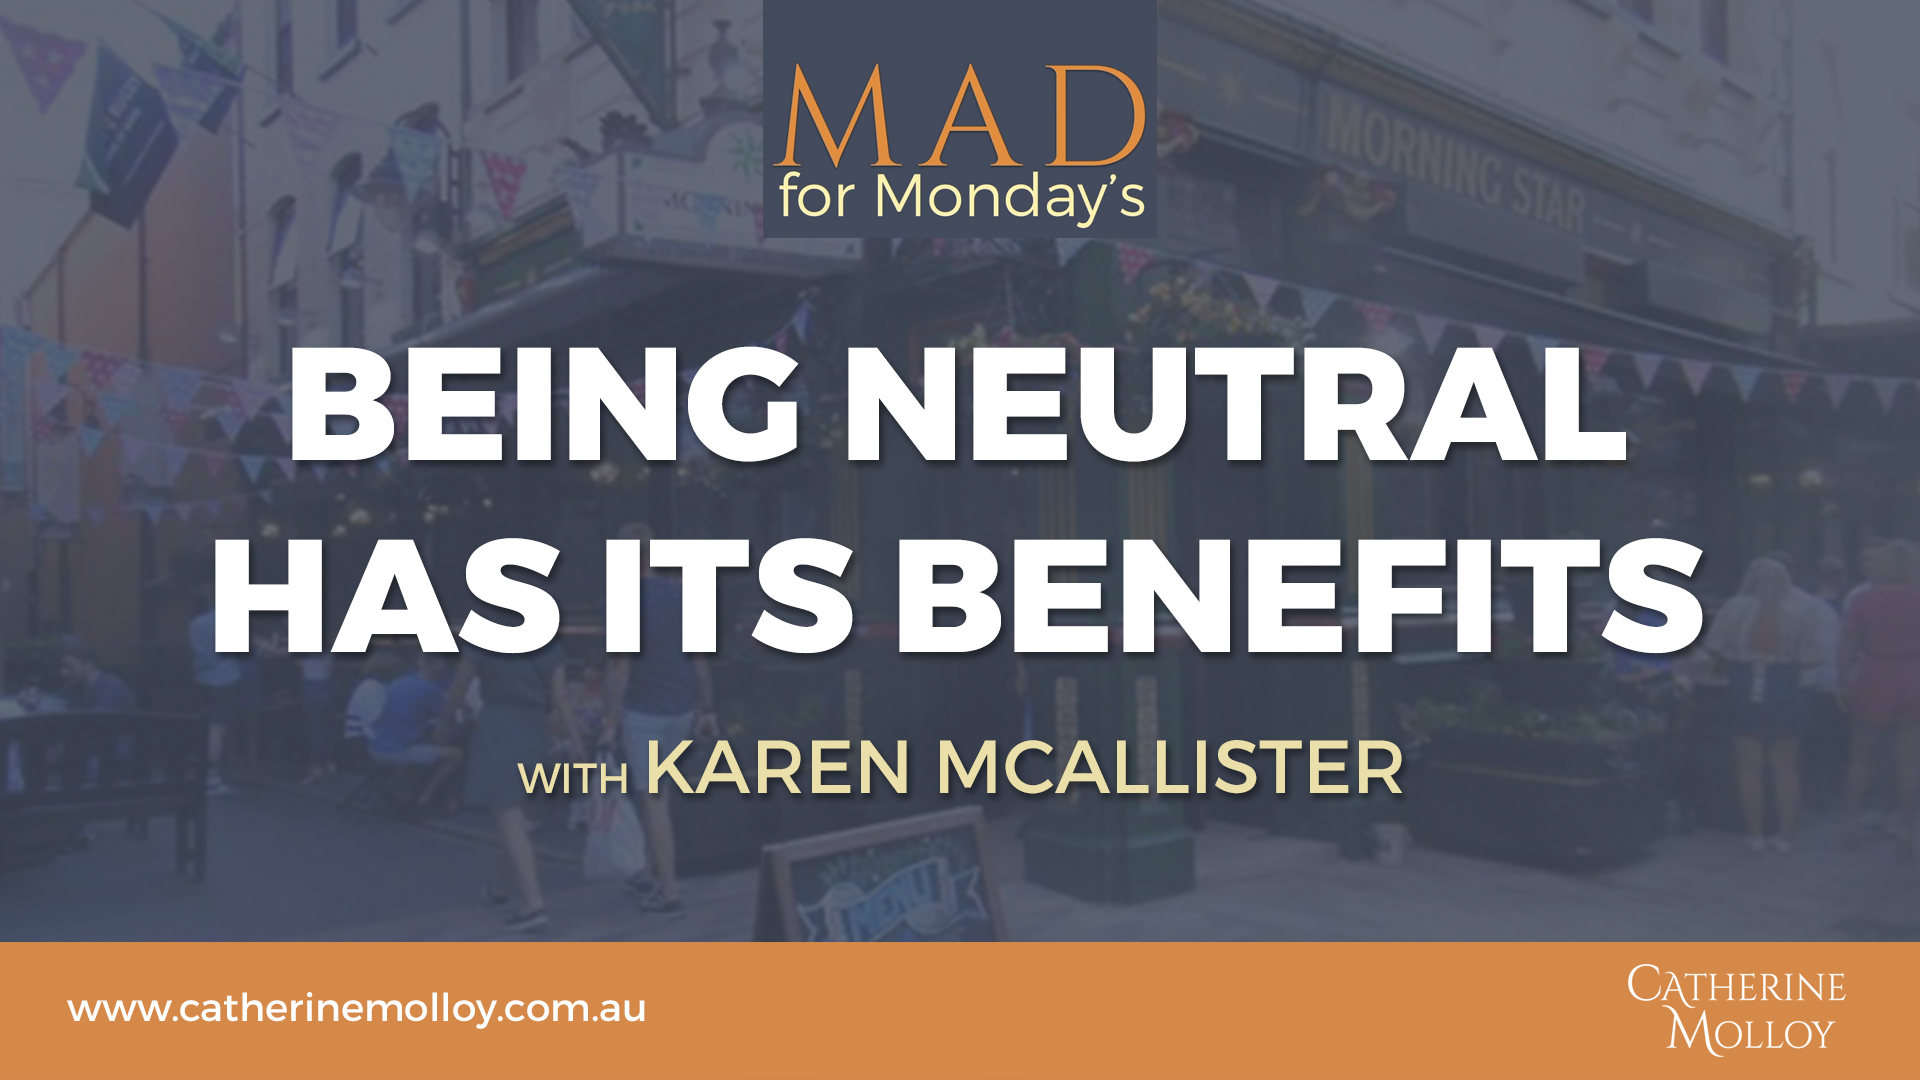 MAD for Monday's – Being Neutral has its Benefits